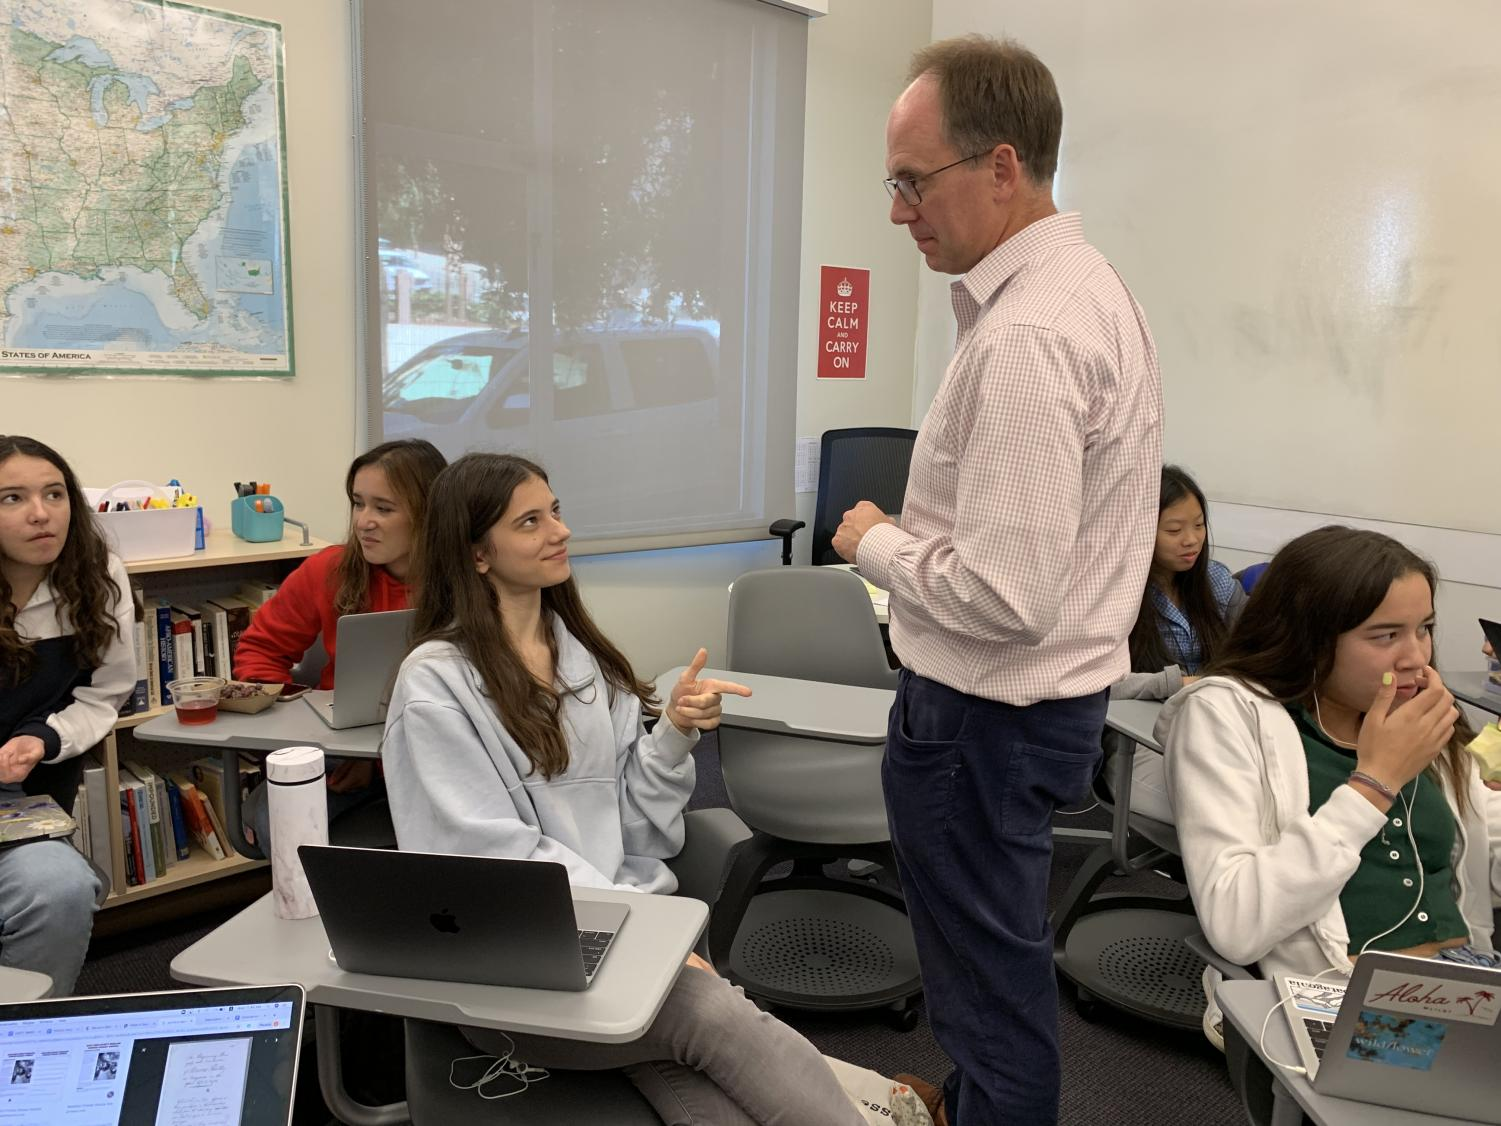 Sophomore Lily Peta asks history teacher Michael. Stafford a question about the early colonists. The class consisted of both discussion and writing time.